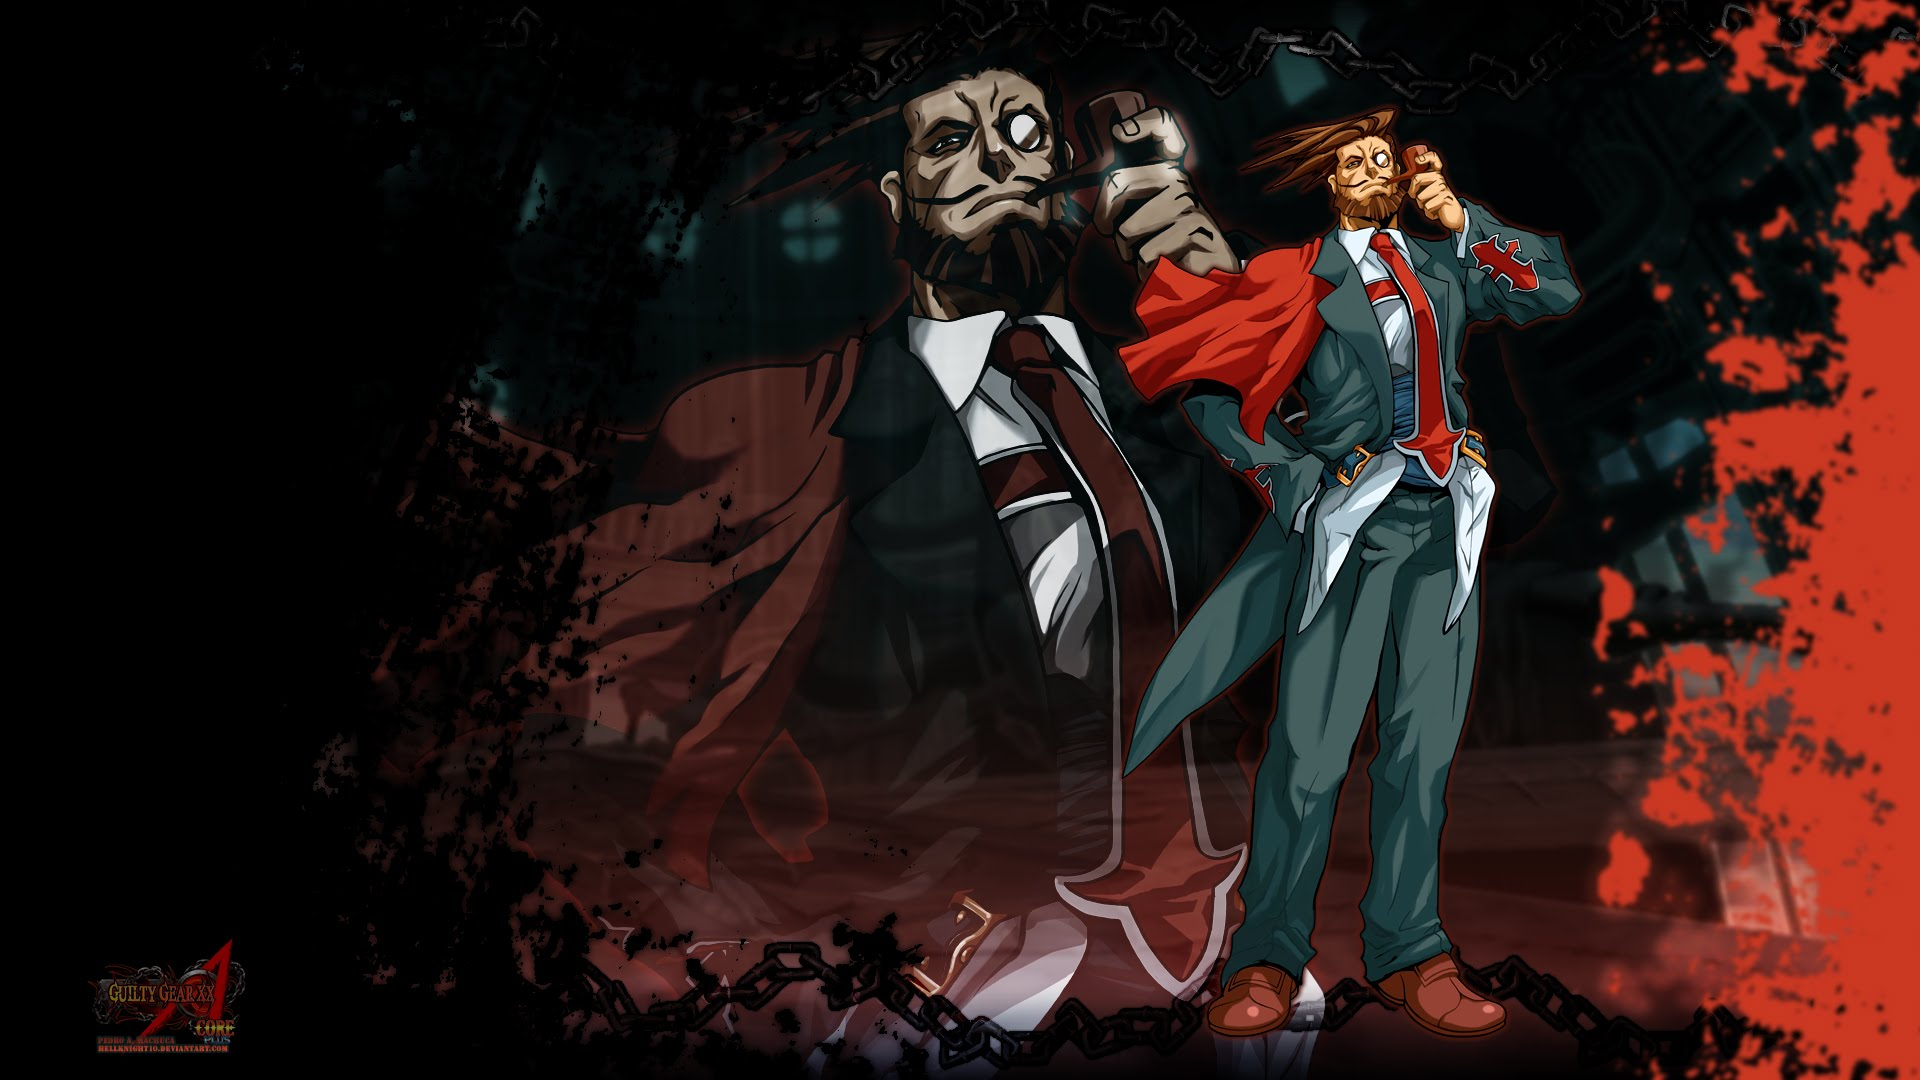 Guilty Gear: Slayer Pictures